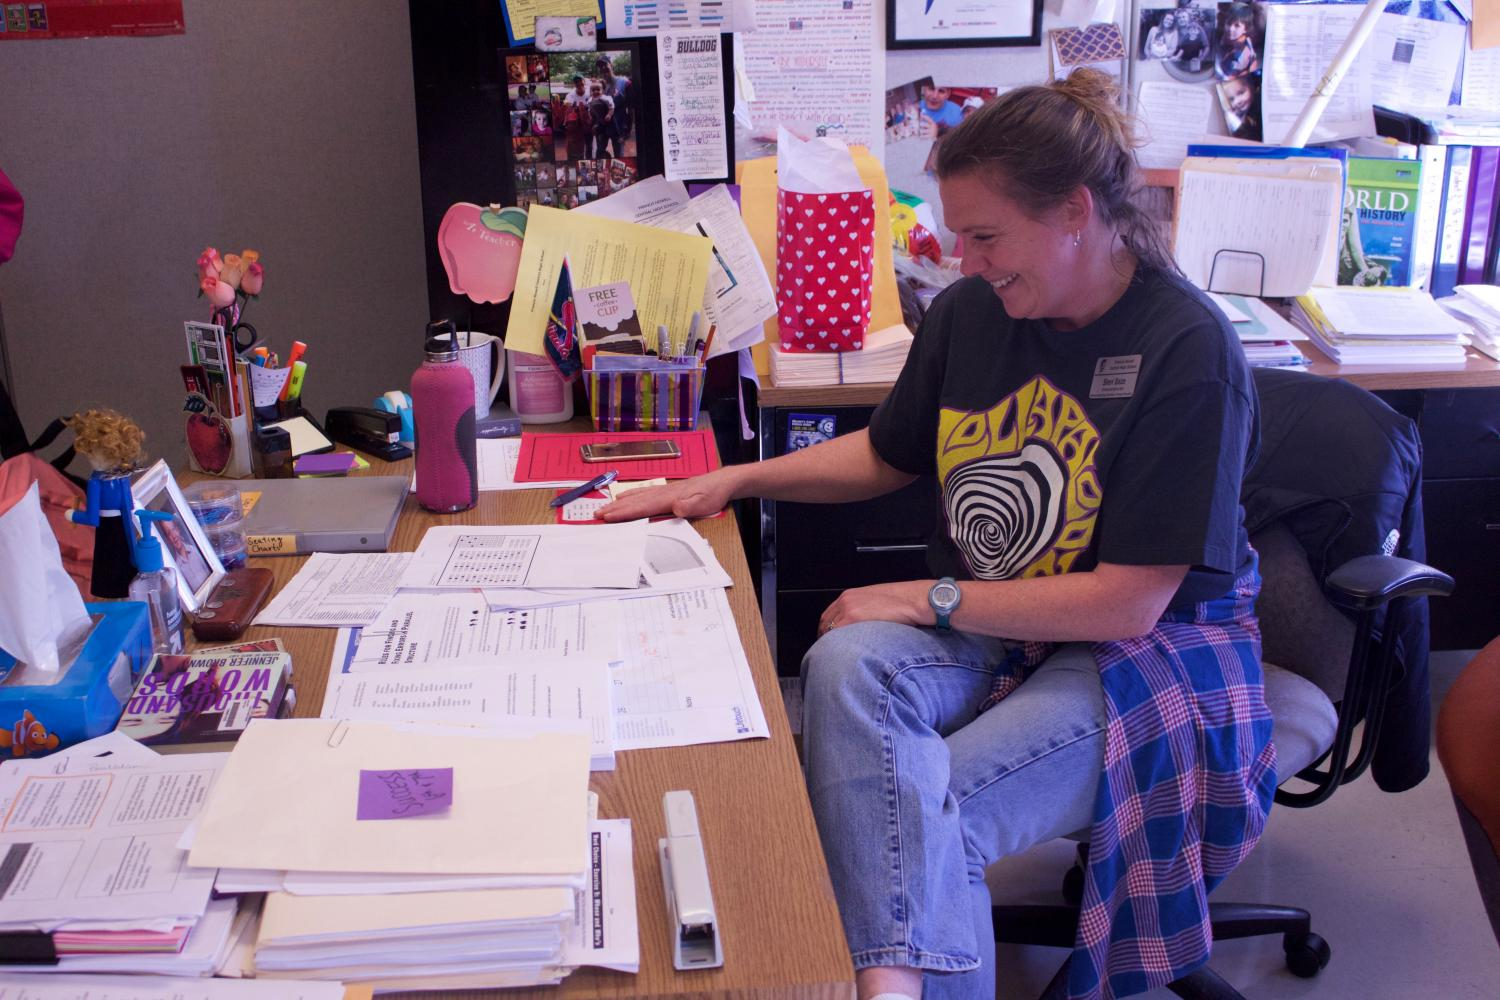 Mrs. Baize grins while getting work done at her desk. She teaches English along with sponsoring the Speech and Debate club.